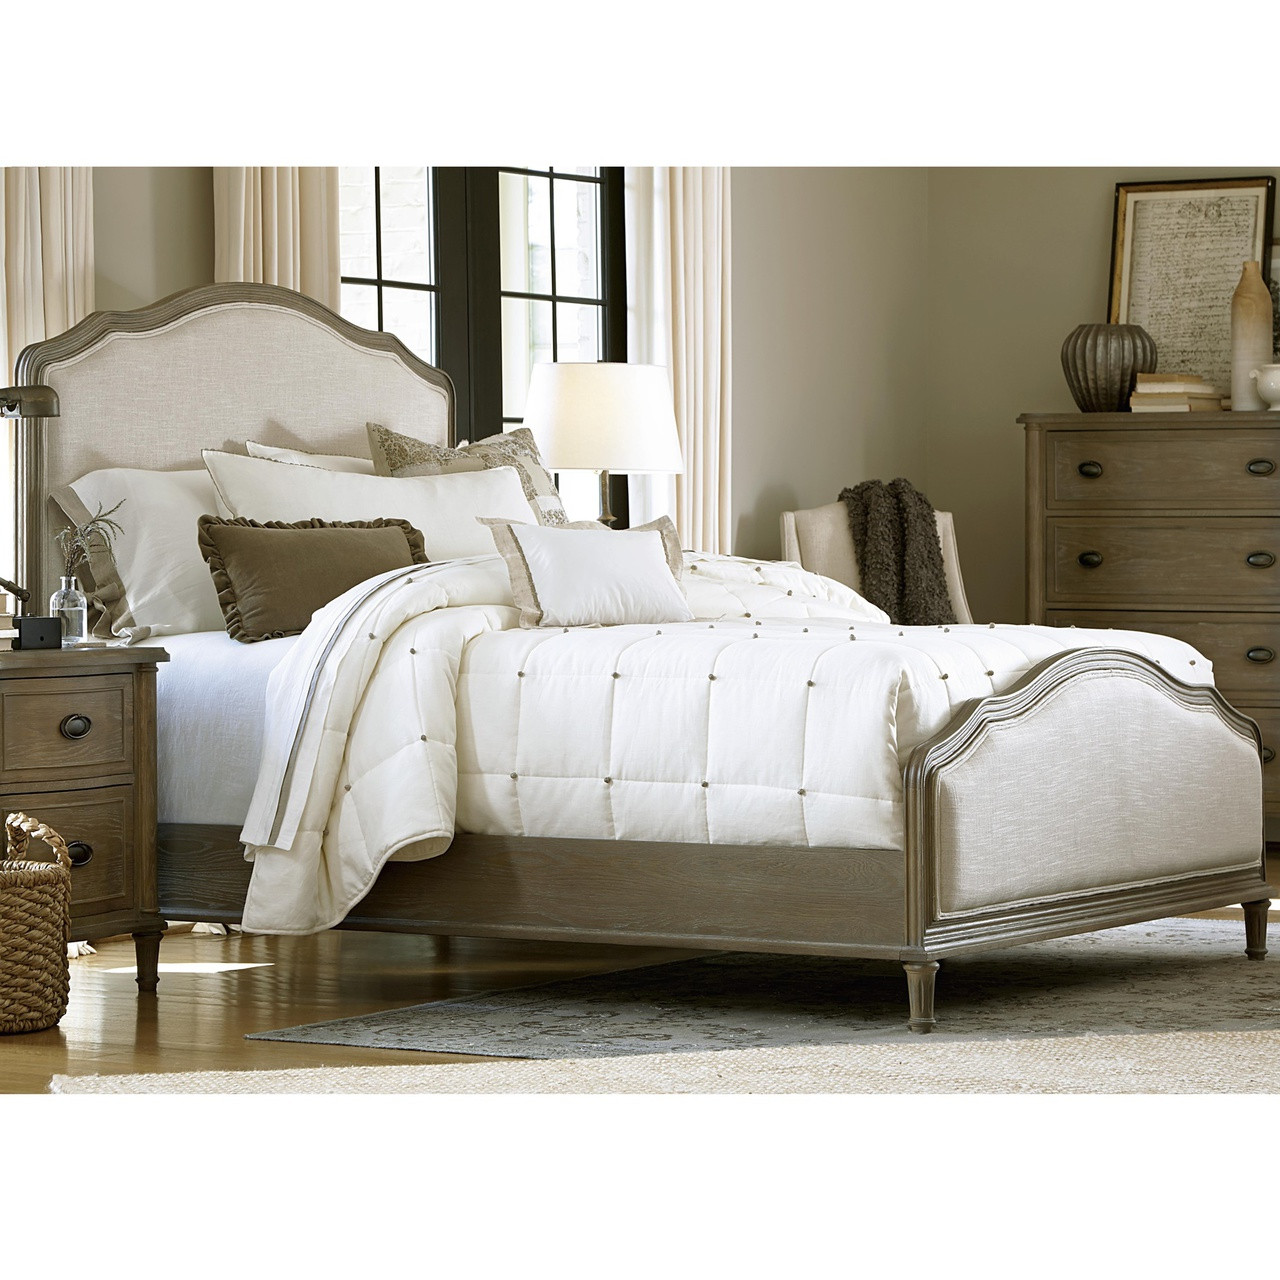 French Country Oak 6 Piece Queen Bedroom Set | Zin Home